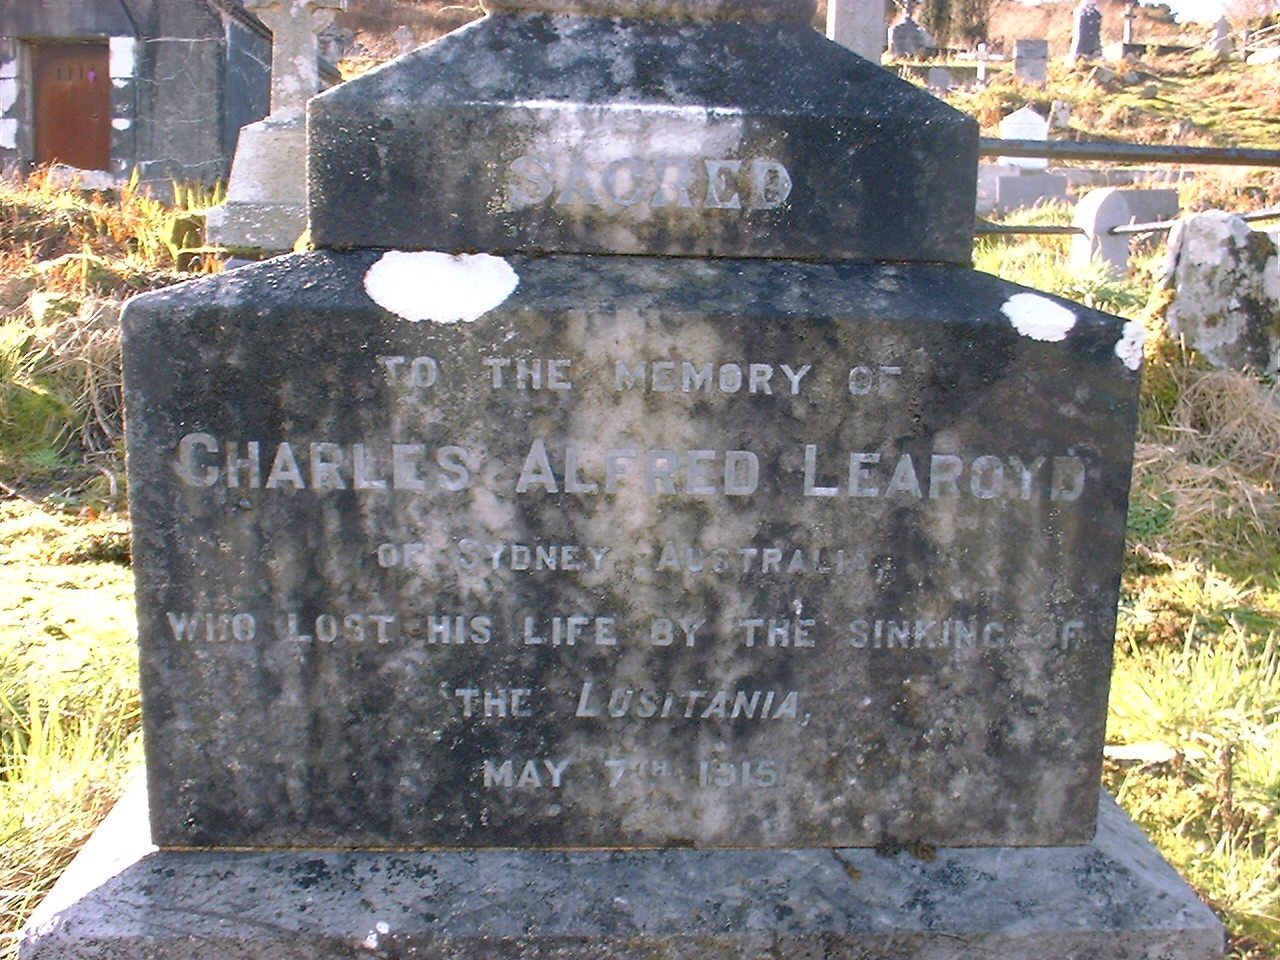 Headstone of Charles Alfred Learoyd